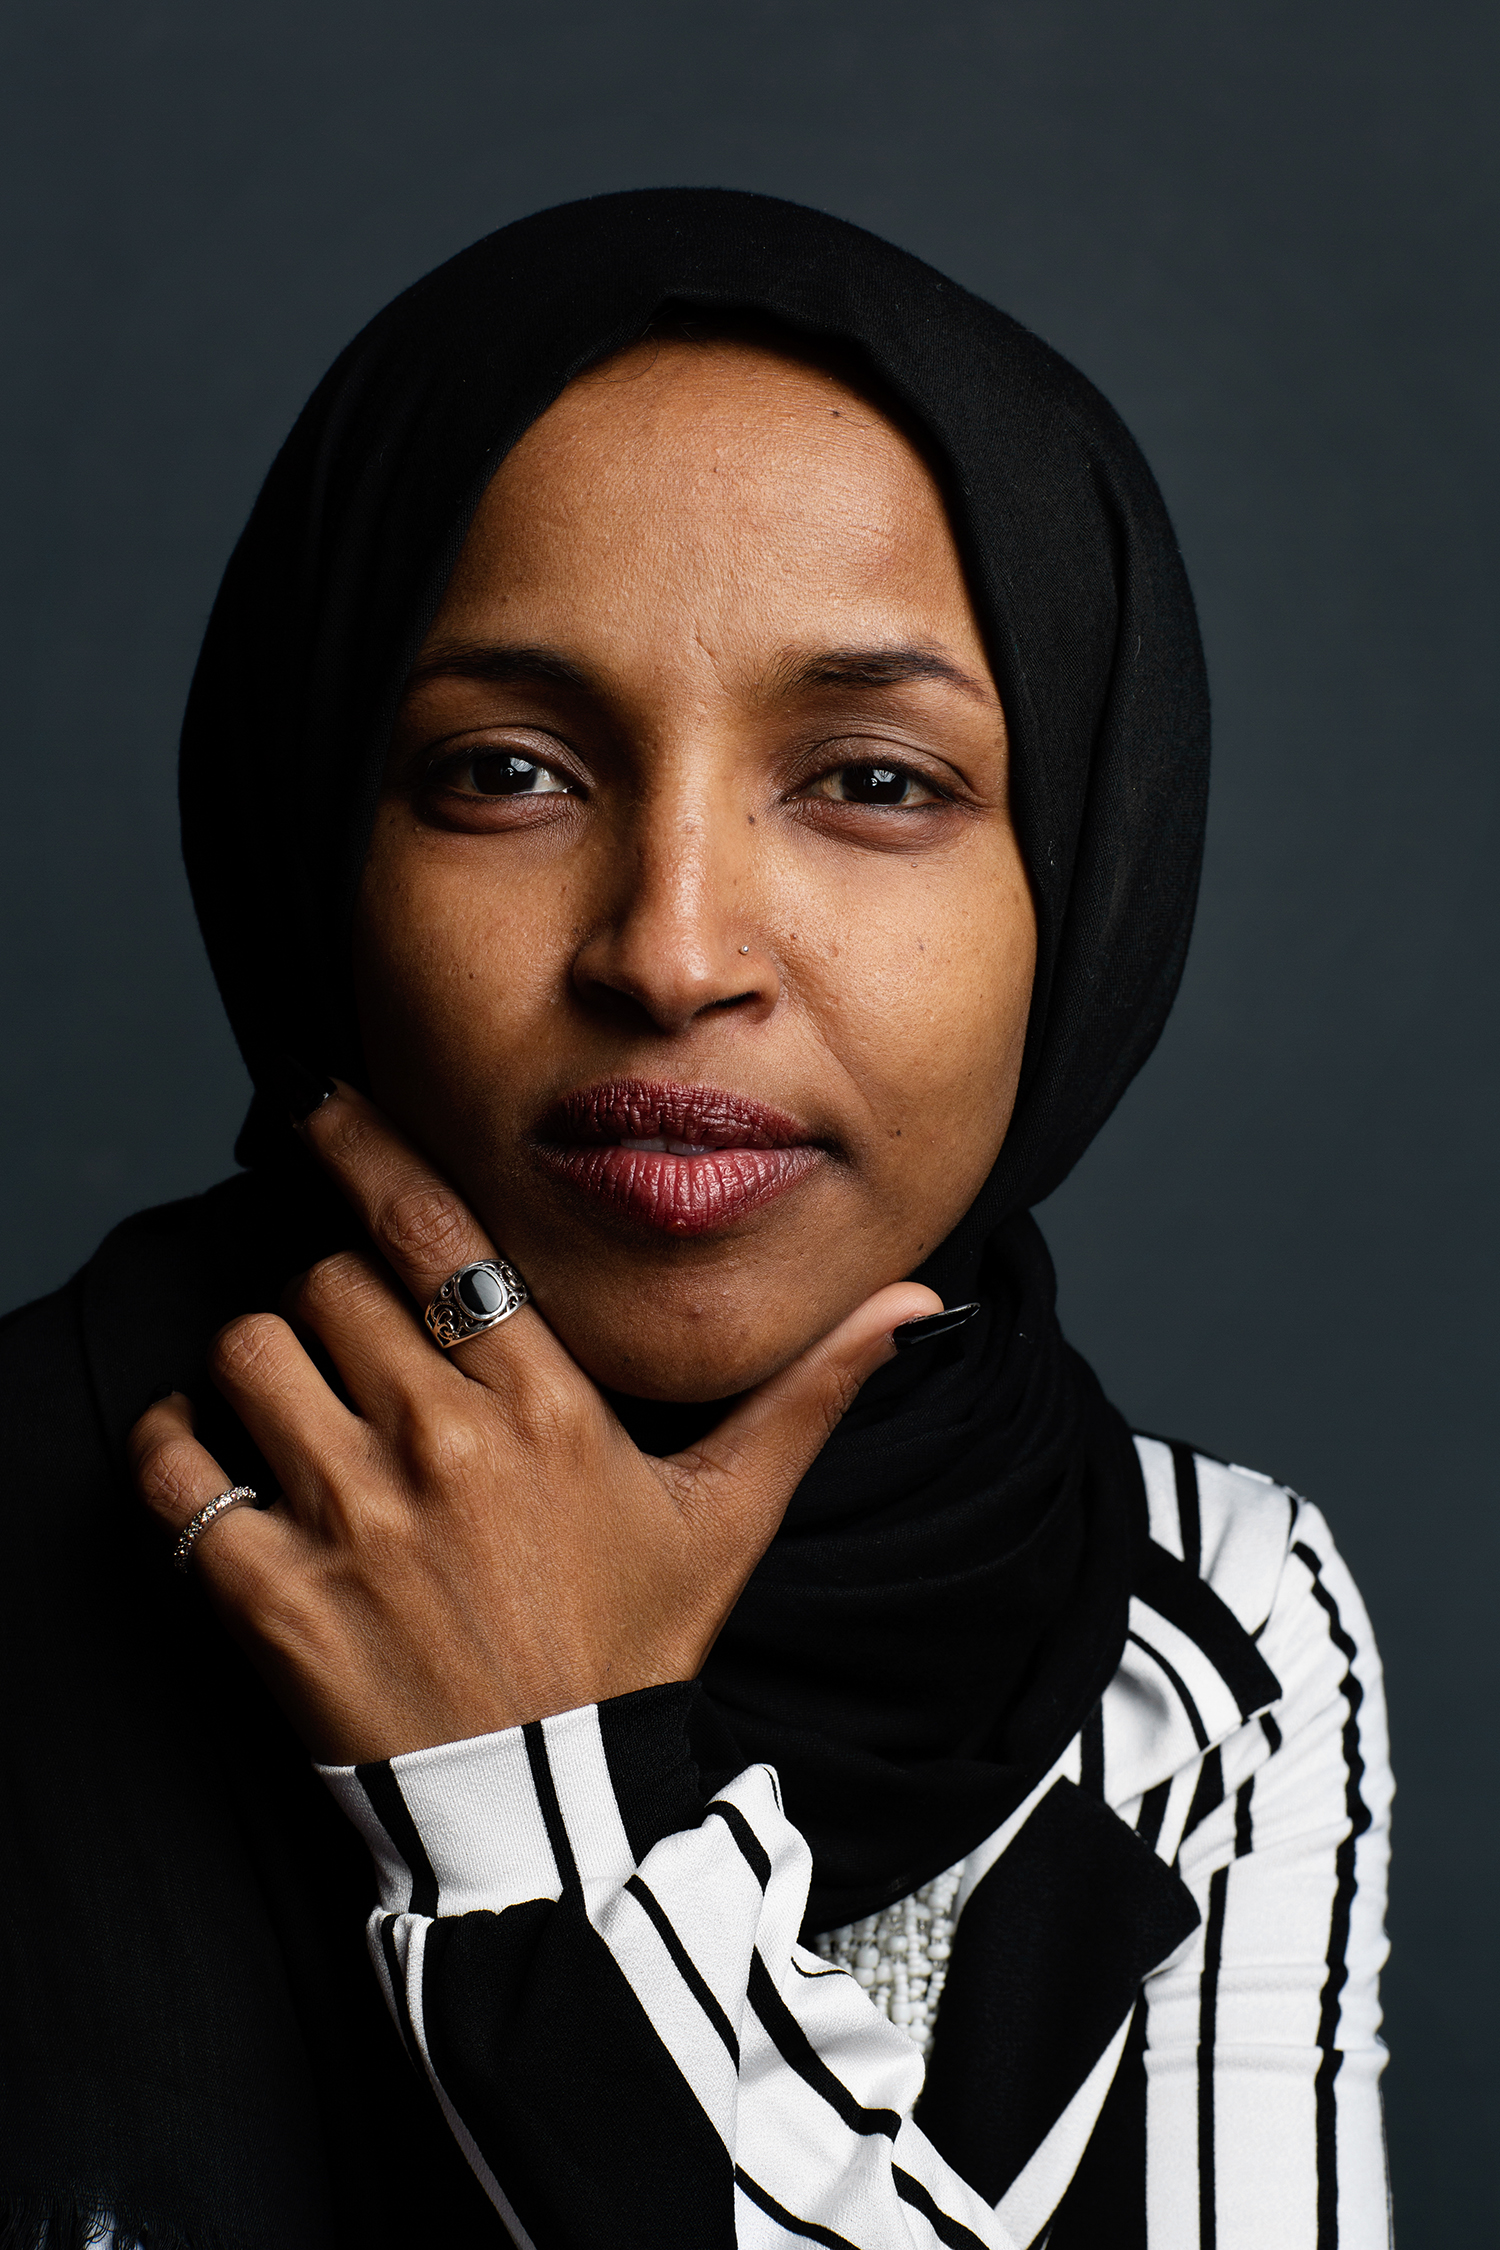 Ilhan Omar *****HOLD FOR WOMEN IN CONGRESS PROJECT****Ilhan Abdullahi Omar is a Somali American politician from Minnesota. In 2016, she was elected to the Minnesota House of Representatives as a member of the Democratic–Farmer–Labor Party, making her the first Somali American elected to legislative office in the United States. On November 6, 2018, she became the first Somali American elected to the United States Congress. Along with Rashida Tlaib, she was one of the first two Muslim women elected to Congress.[4] Omar is also the first Somali American elected to Congress, and the first woman of color to serve as a U.S. Representative from Minnesota